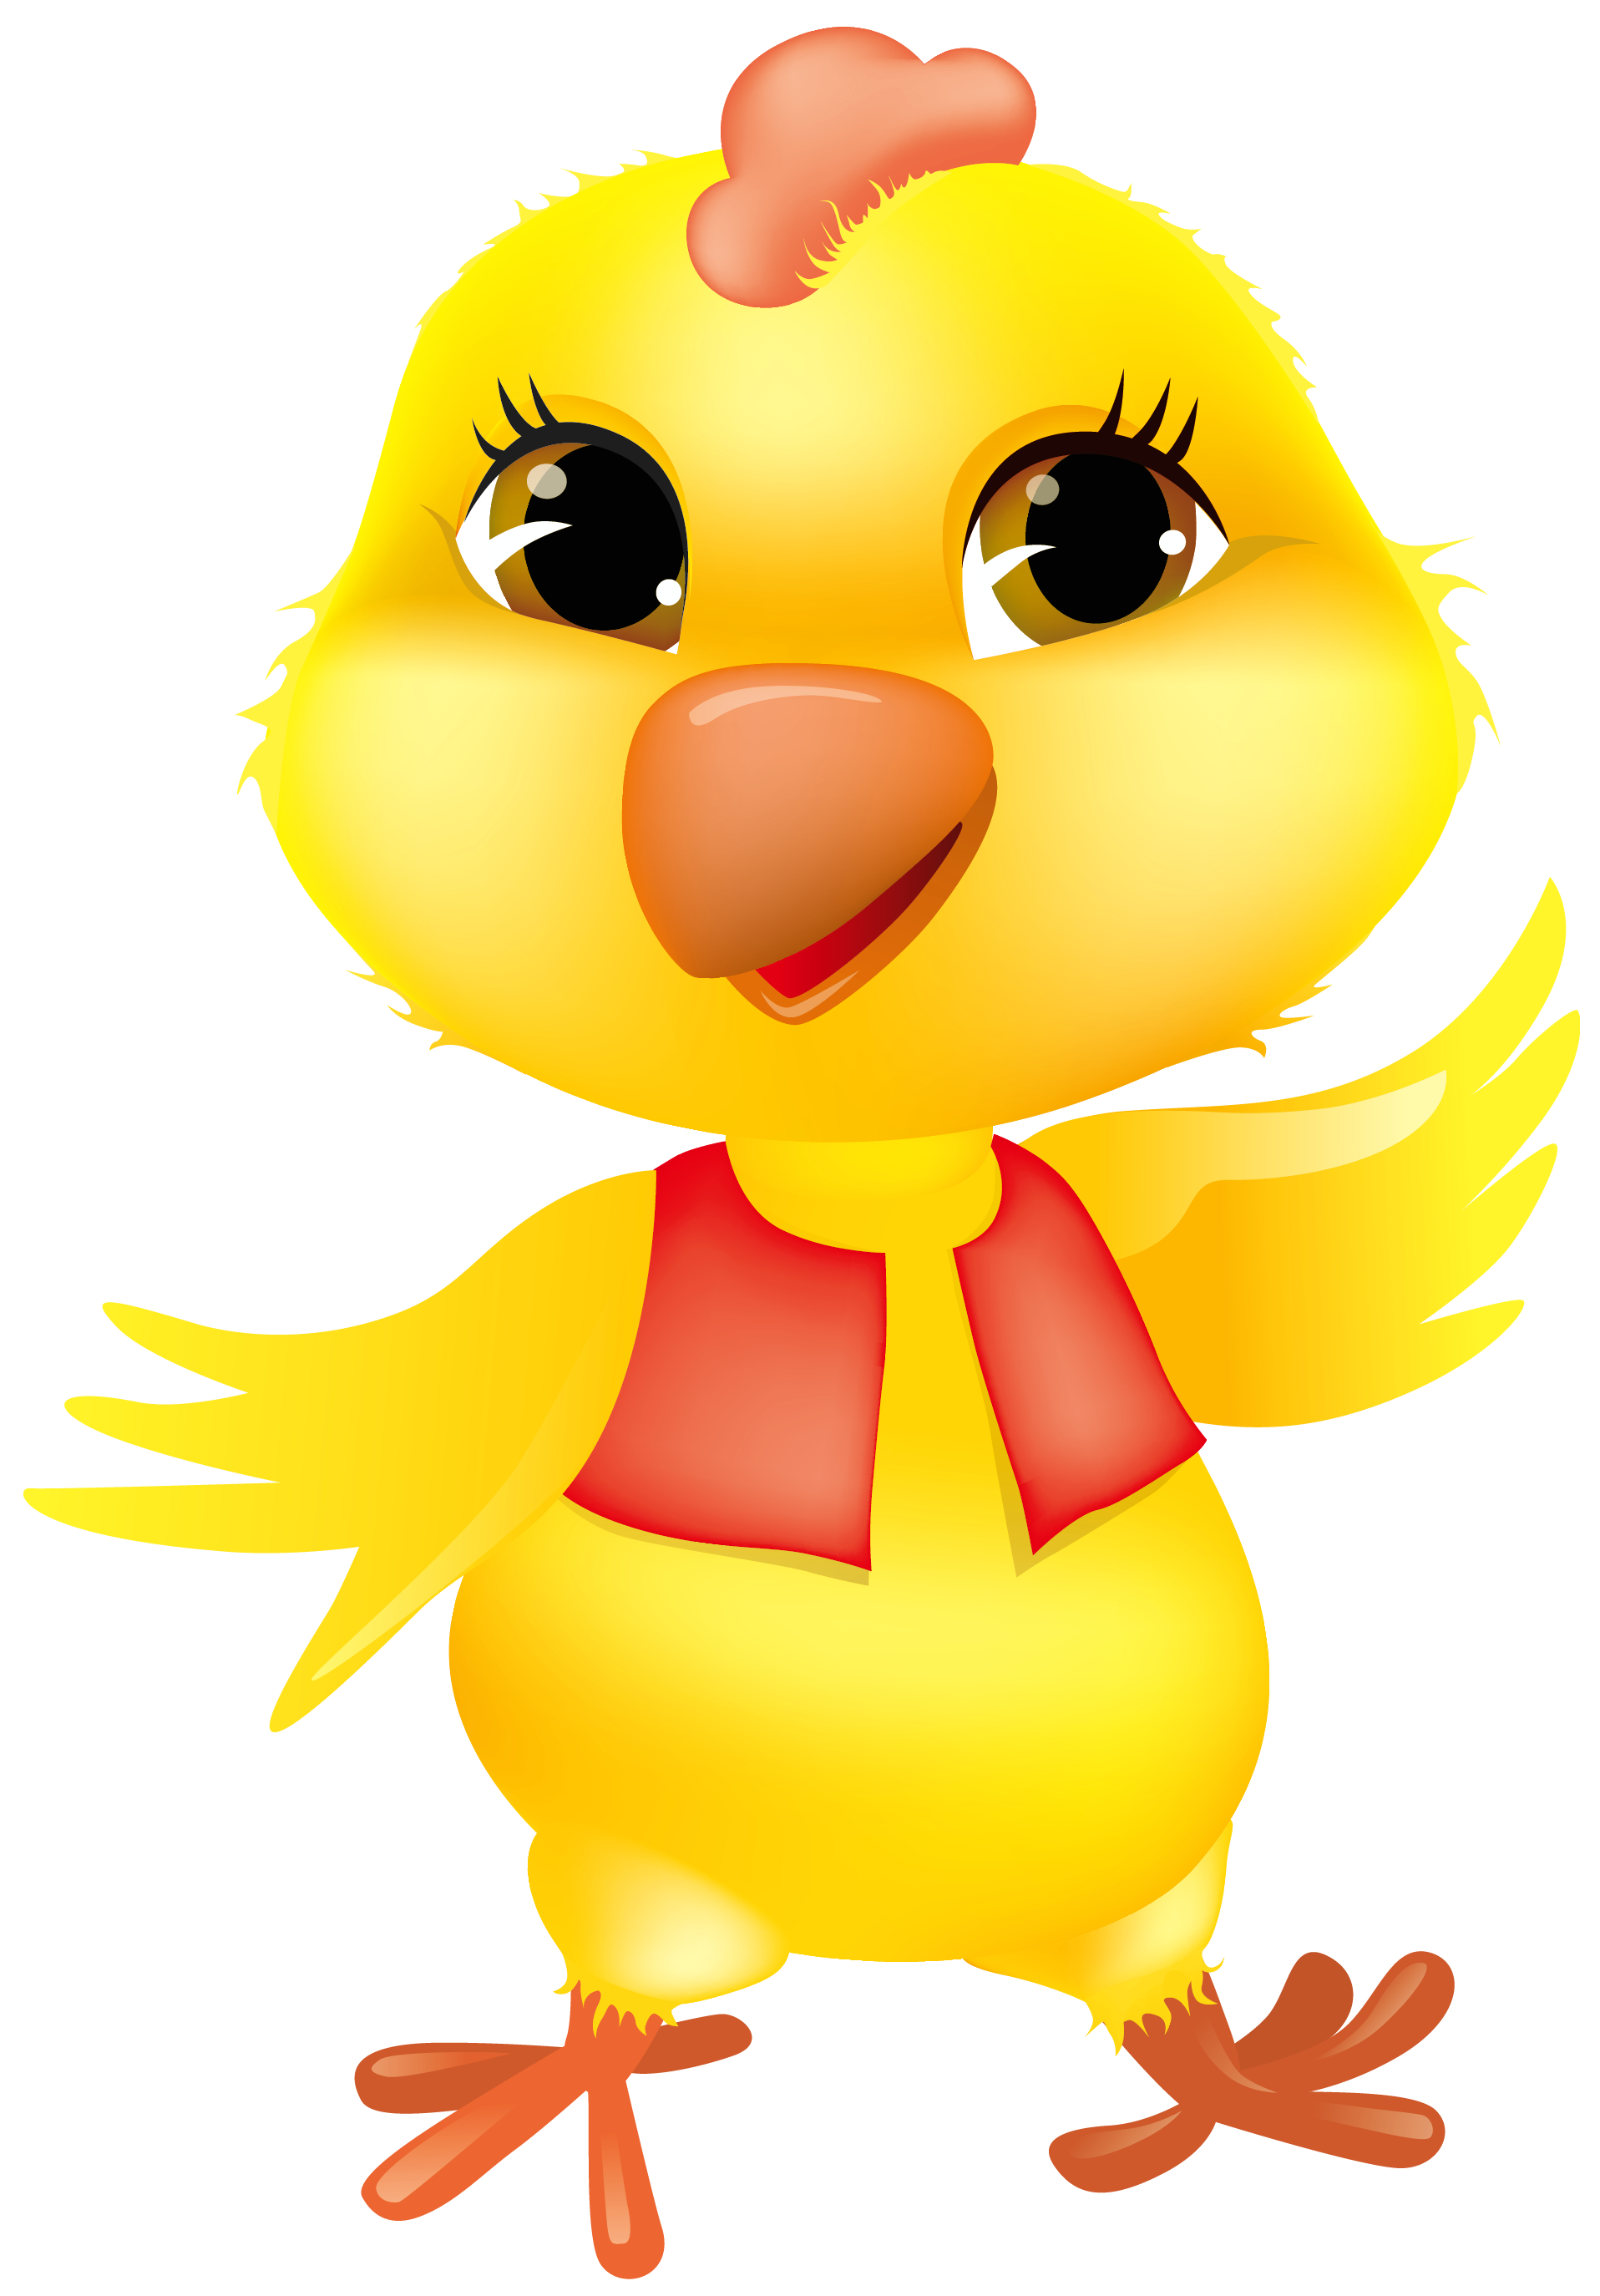 1916x2749 Chicken Egg Clipart Chick Clipart Brown Egg Clip Art Image 2